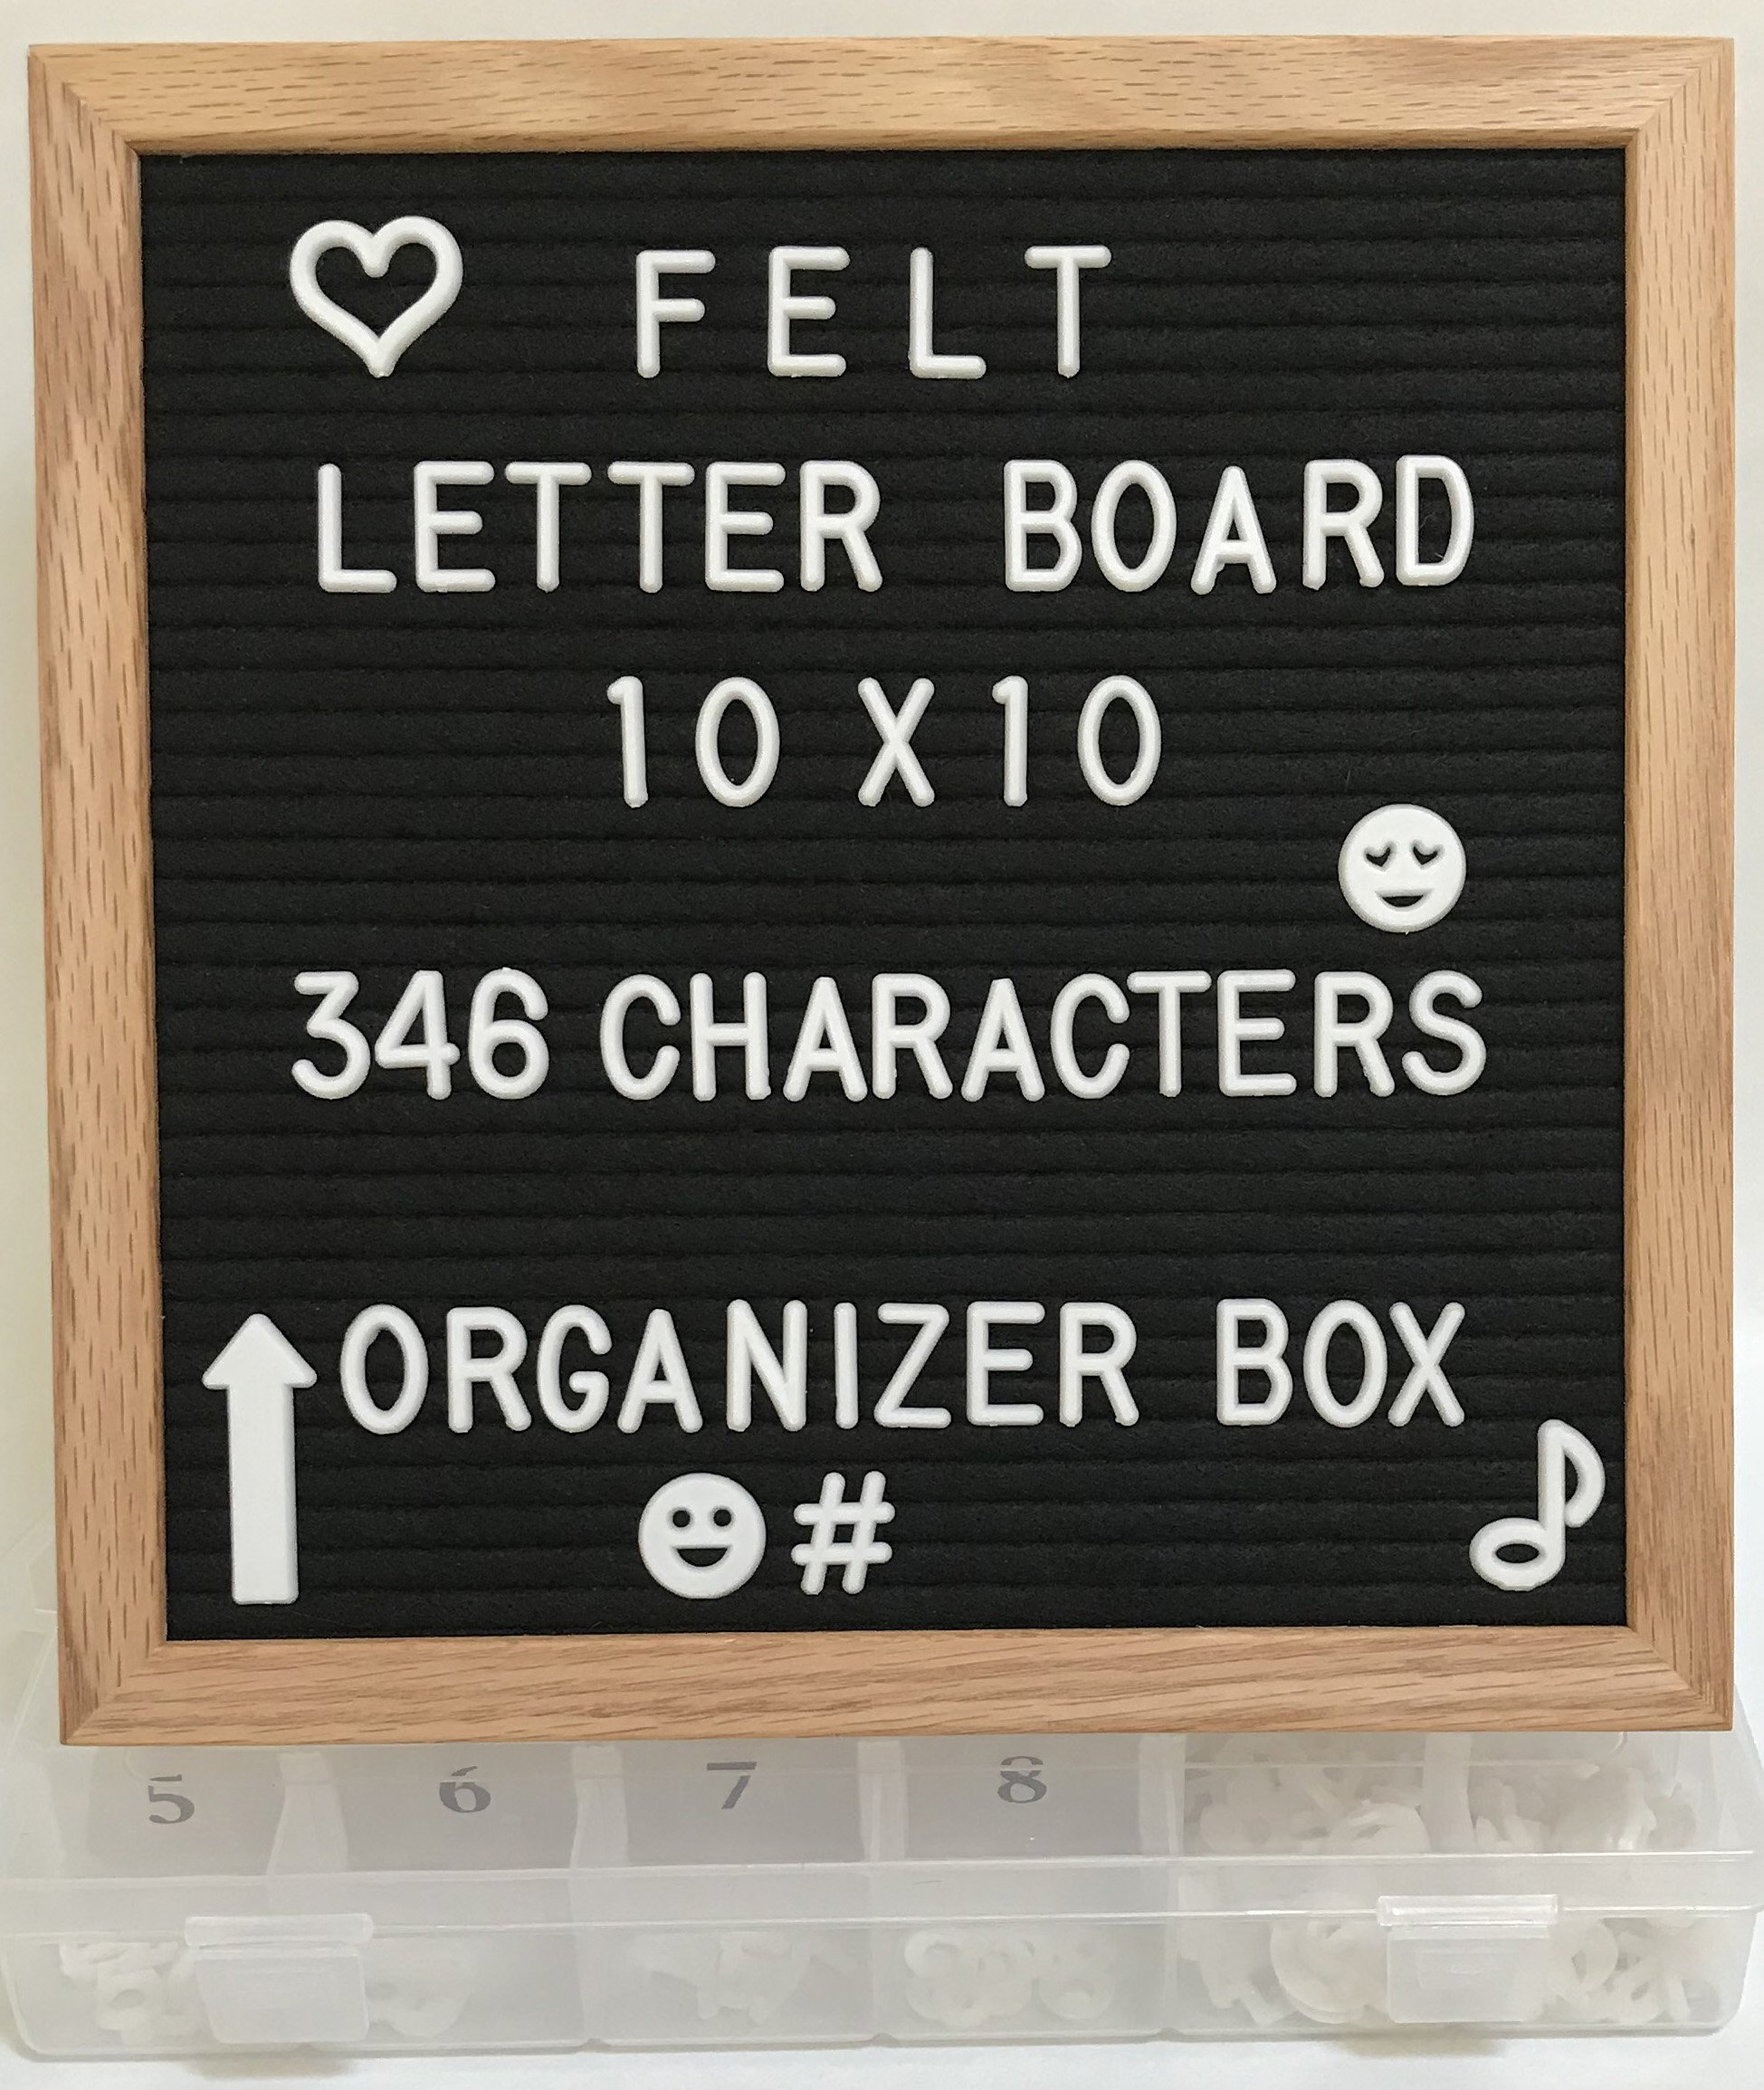 Felt Letter Board Set - Black - 10x10 Oak Wood Frame - Includes 346 3/4 inch White Letters with Organizer - Changeable Messages Great for Kids or Business